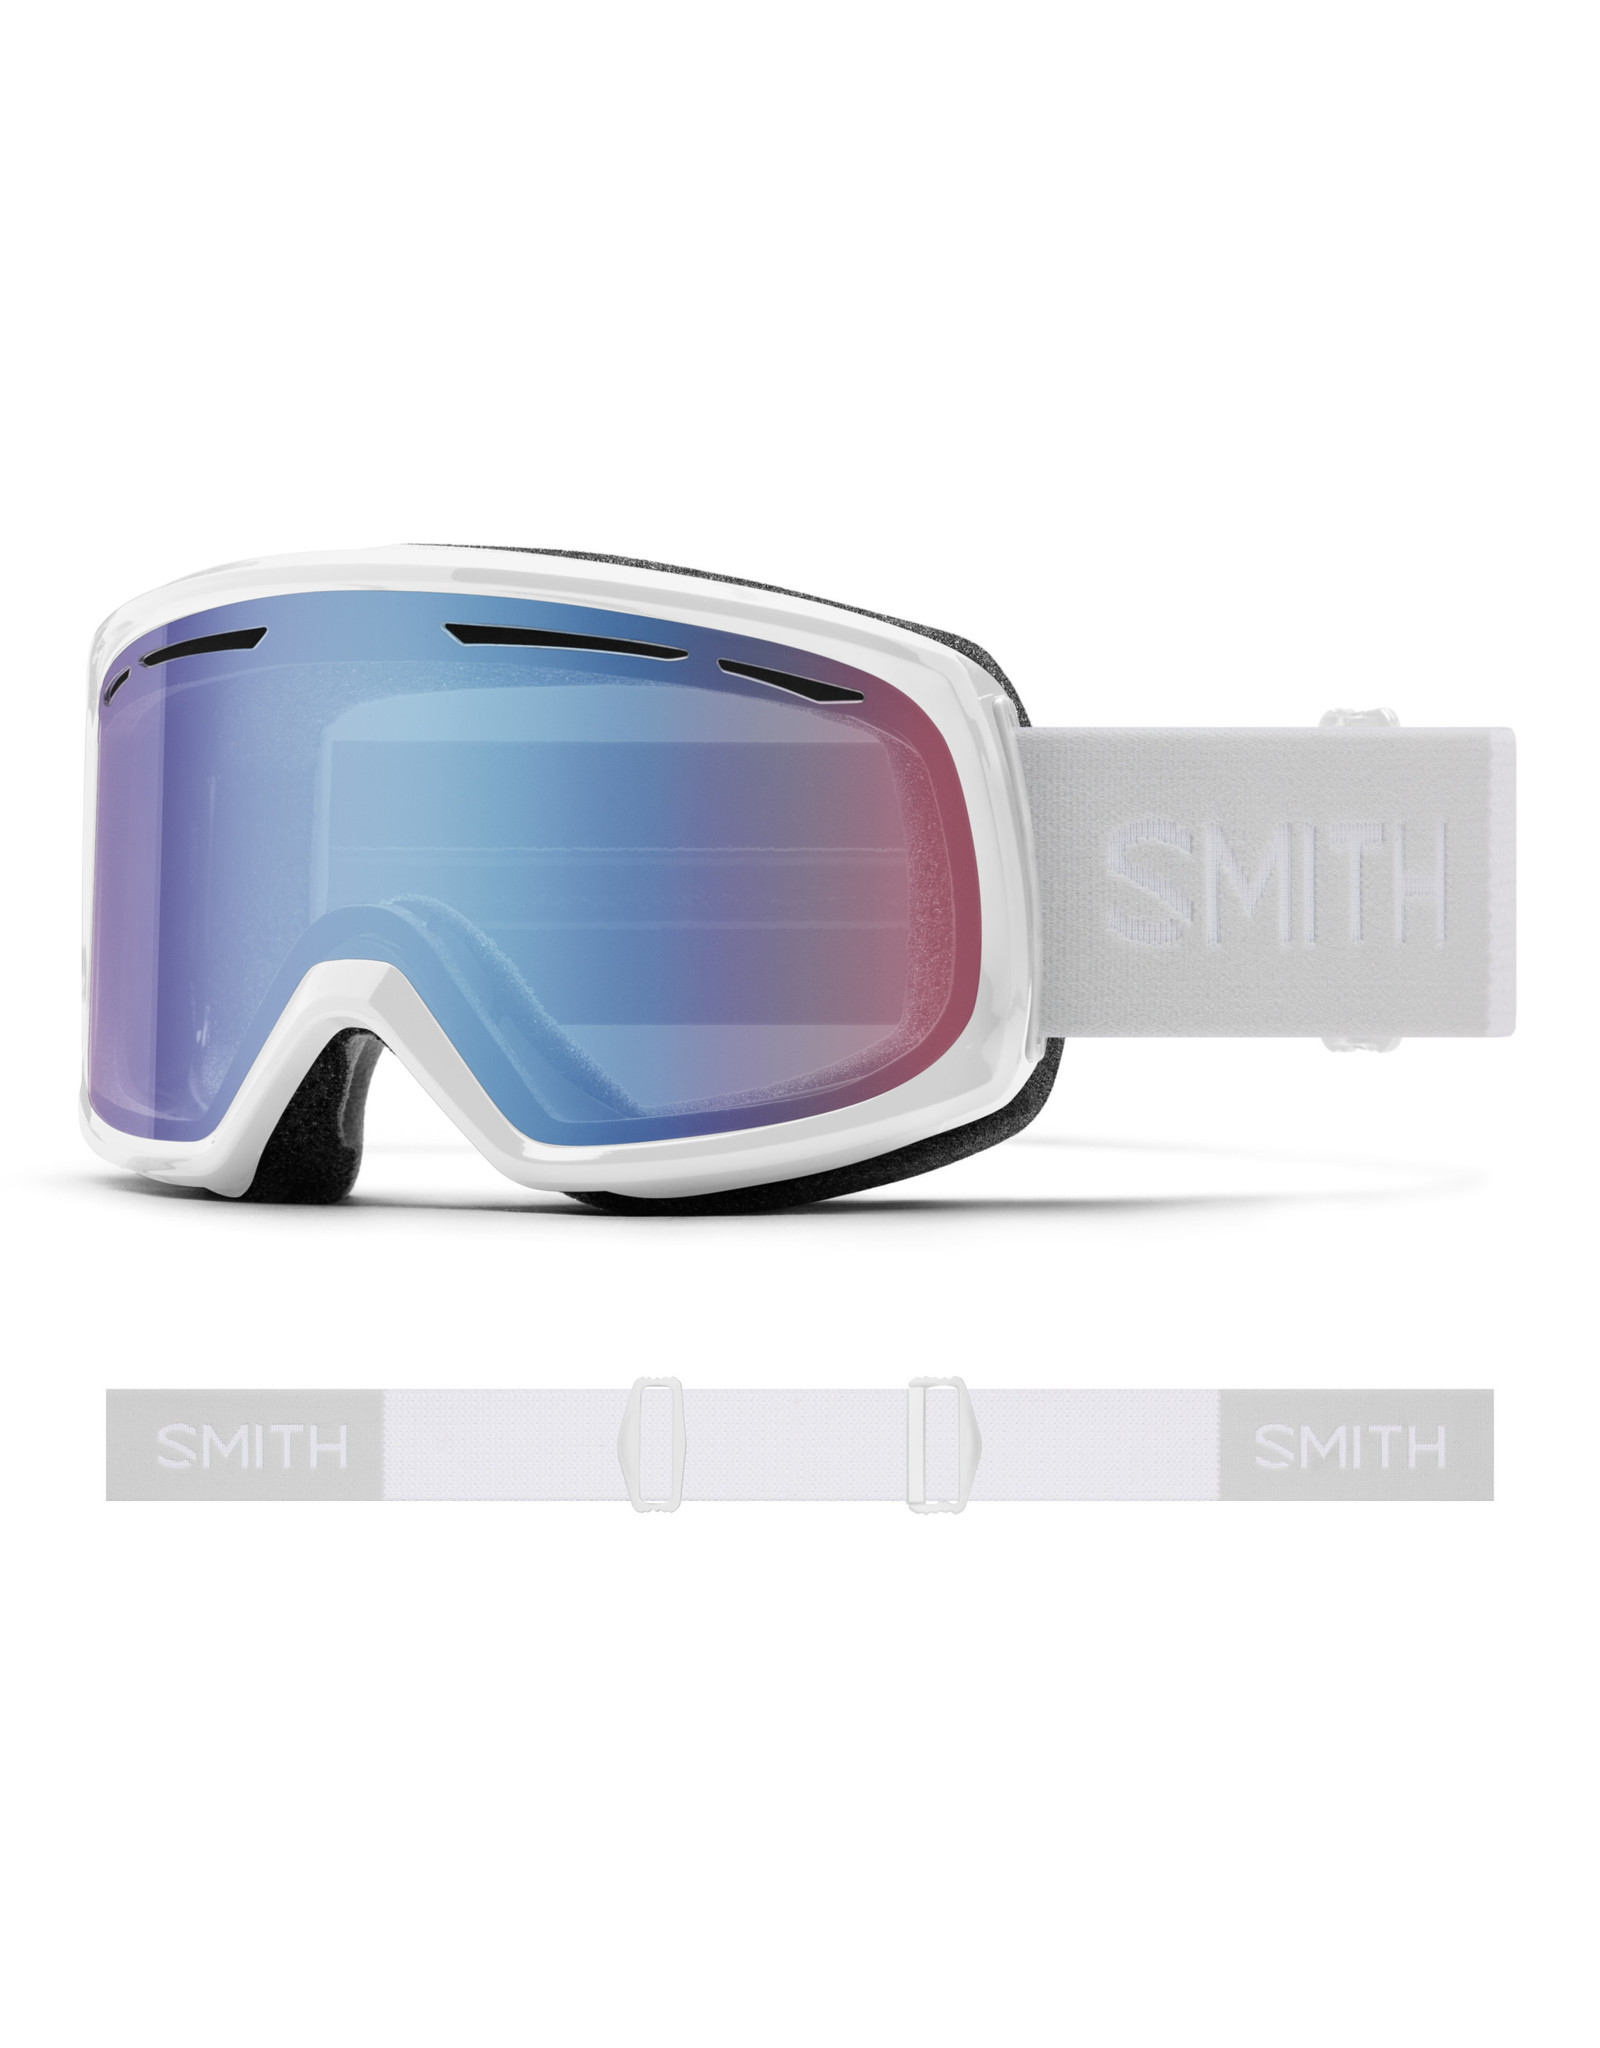 Smith SMITH DRIFT WHITE 20 SKI GOGGLE